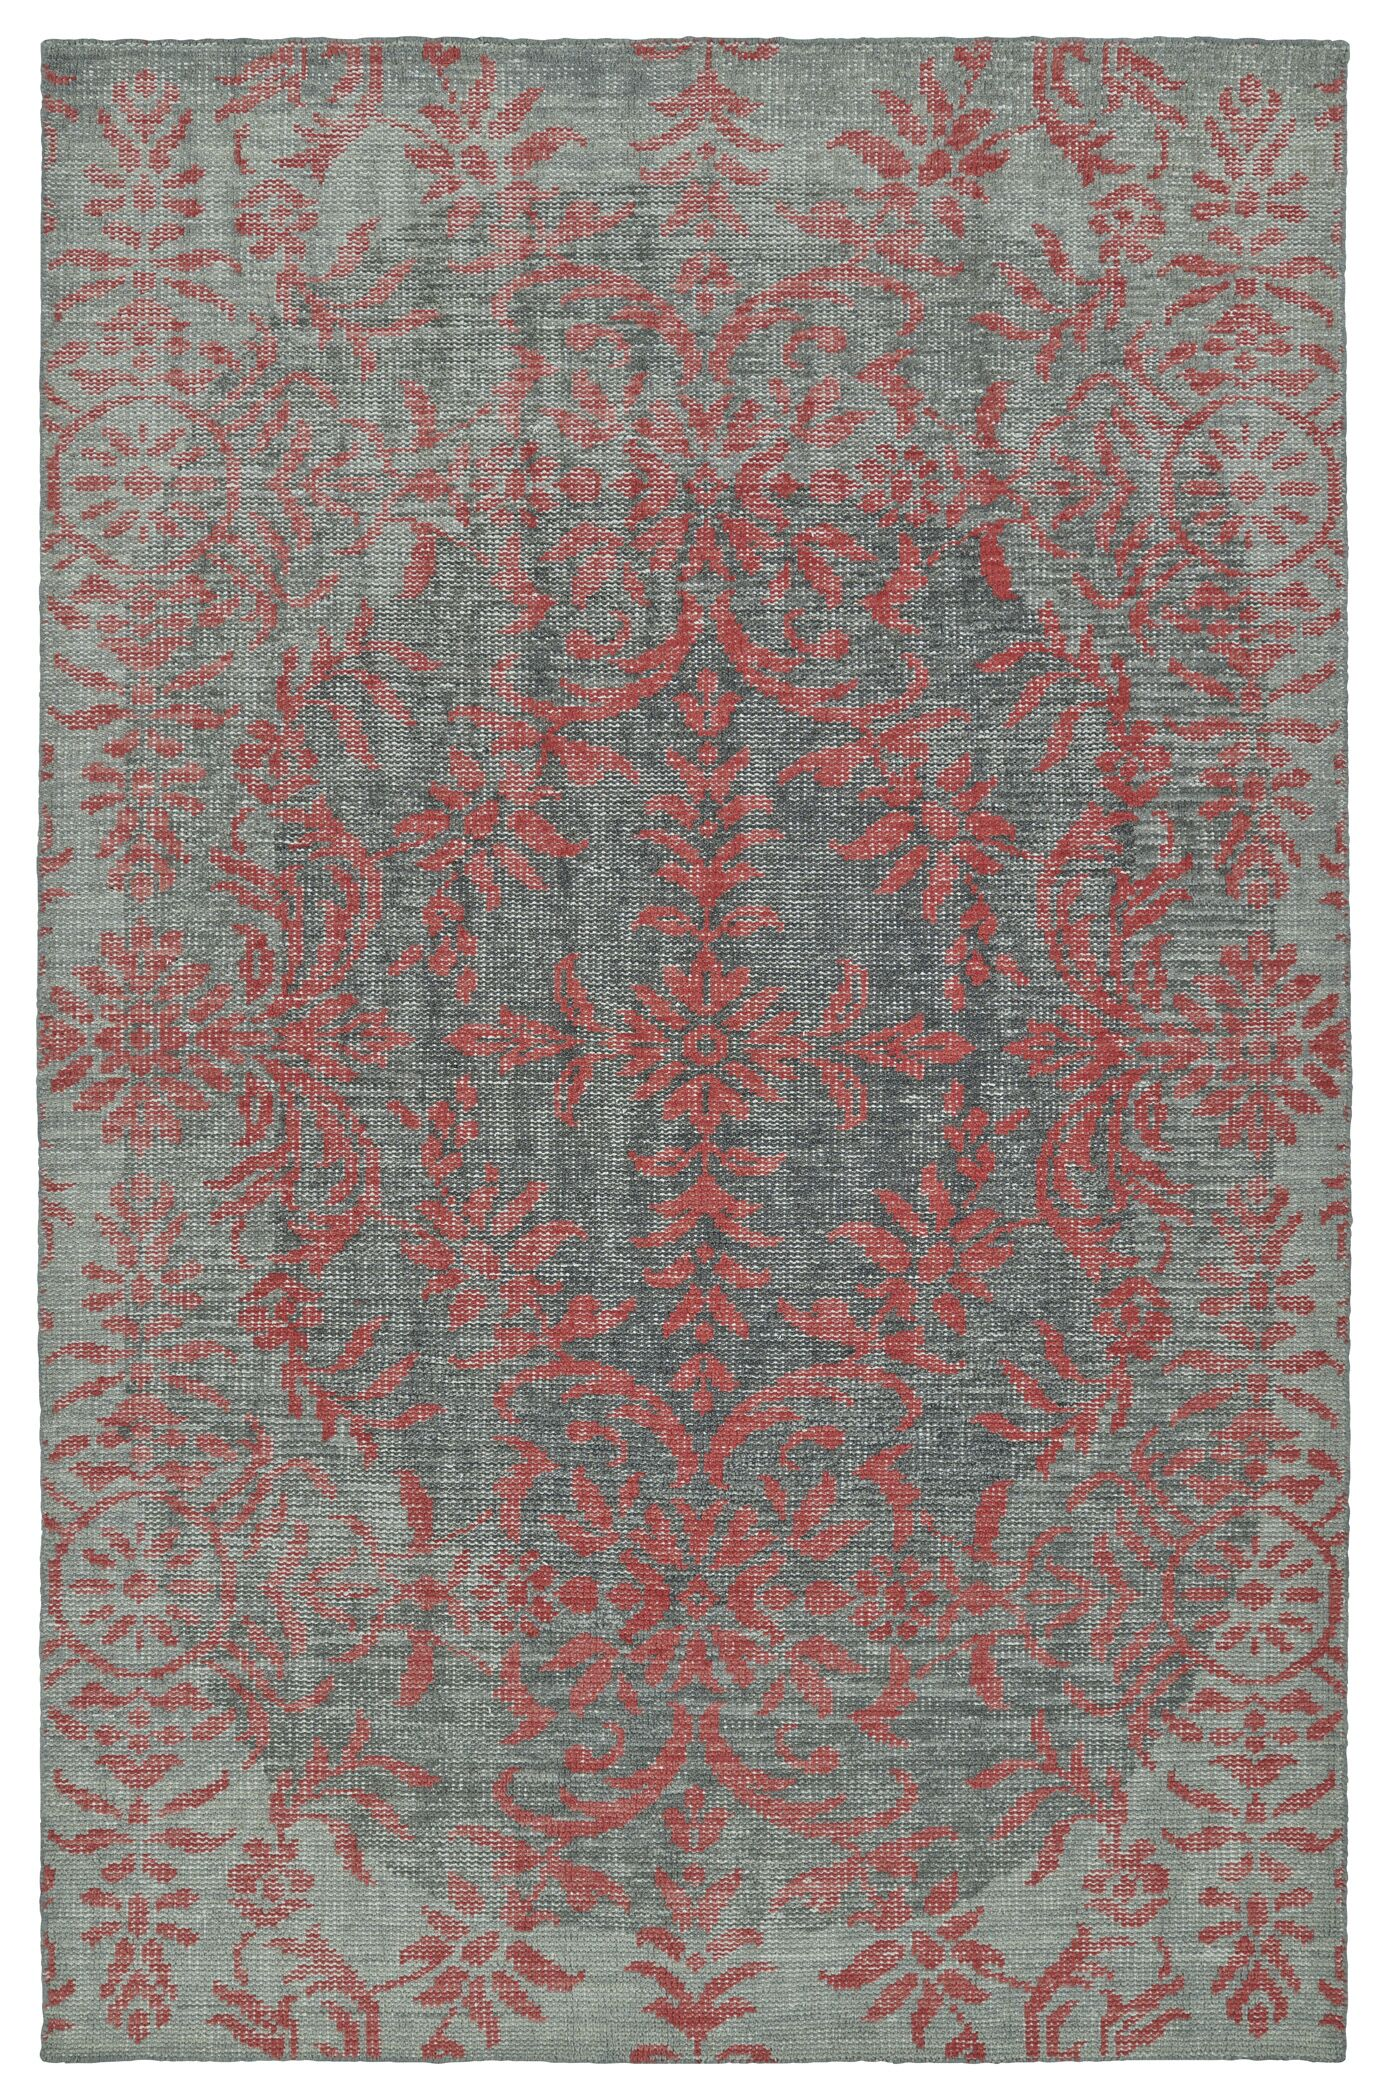 Masmoudi Hand-Knotted Pink Area Rug Rug Size: Rectangle 2' x 3'